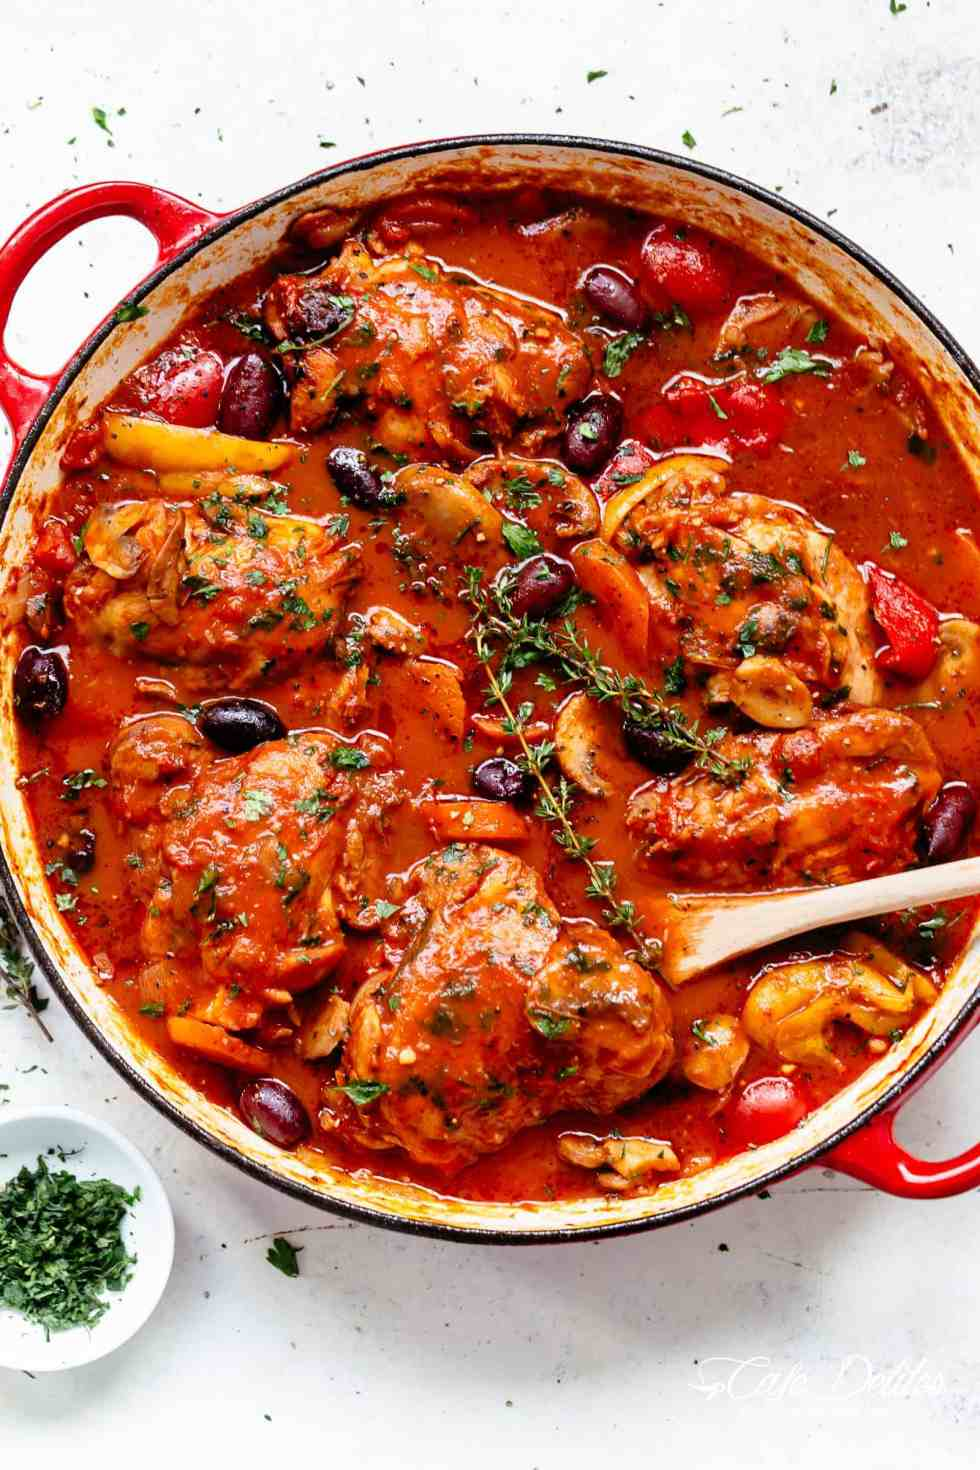 The BEST Chicken Cacciatore in a rich and rustic sauce withchicken falling off the boneis simple Italian comfort foodat its best! Authentic Chicken Cacciatore is an Italian classic, and you'll never get a more succulent home cooked meal than this recipe!Easy to make and loved by the entire family! | cafedelites.com